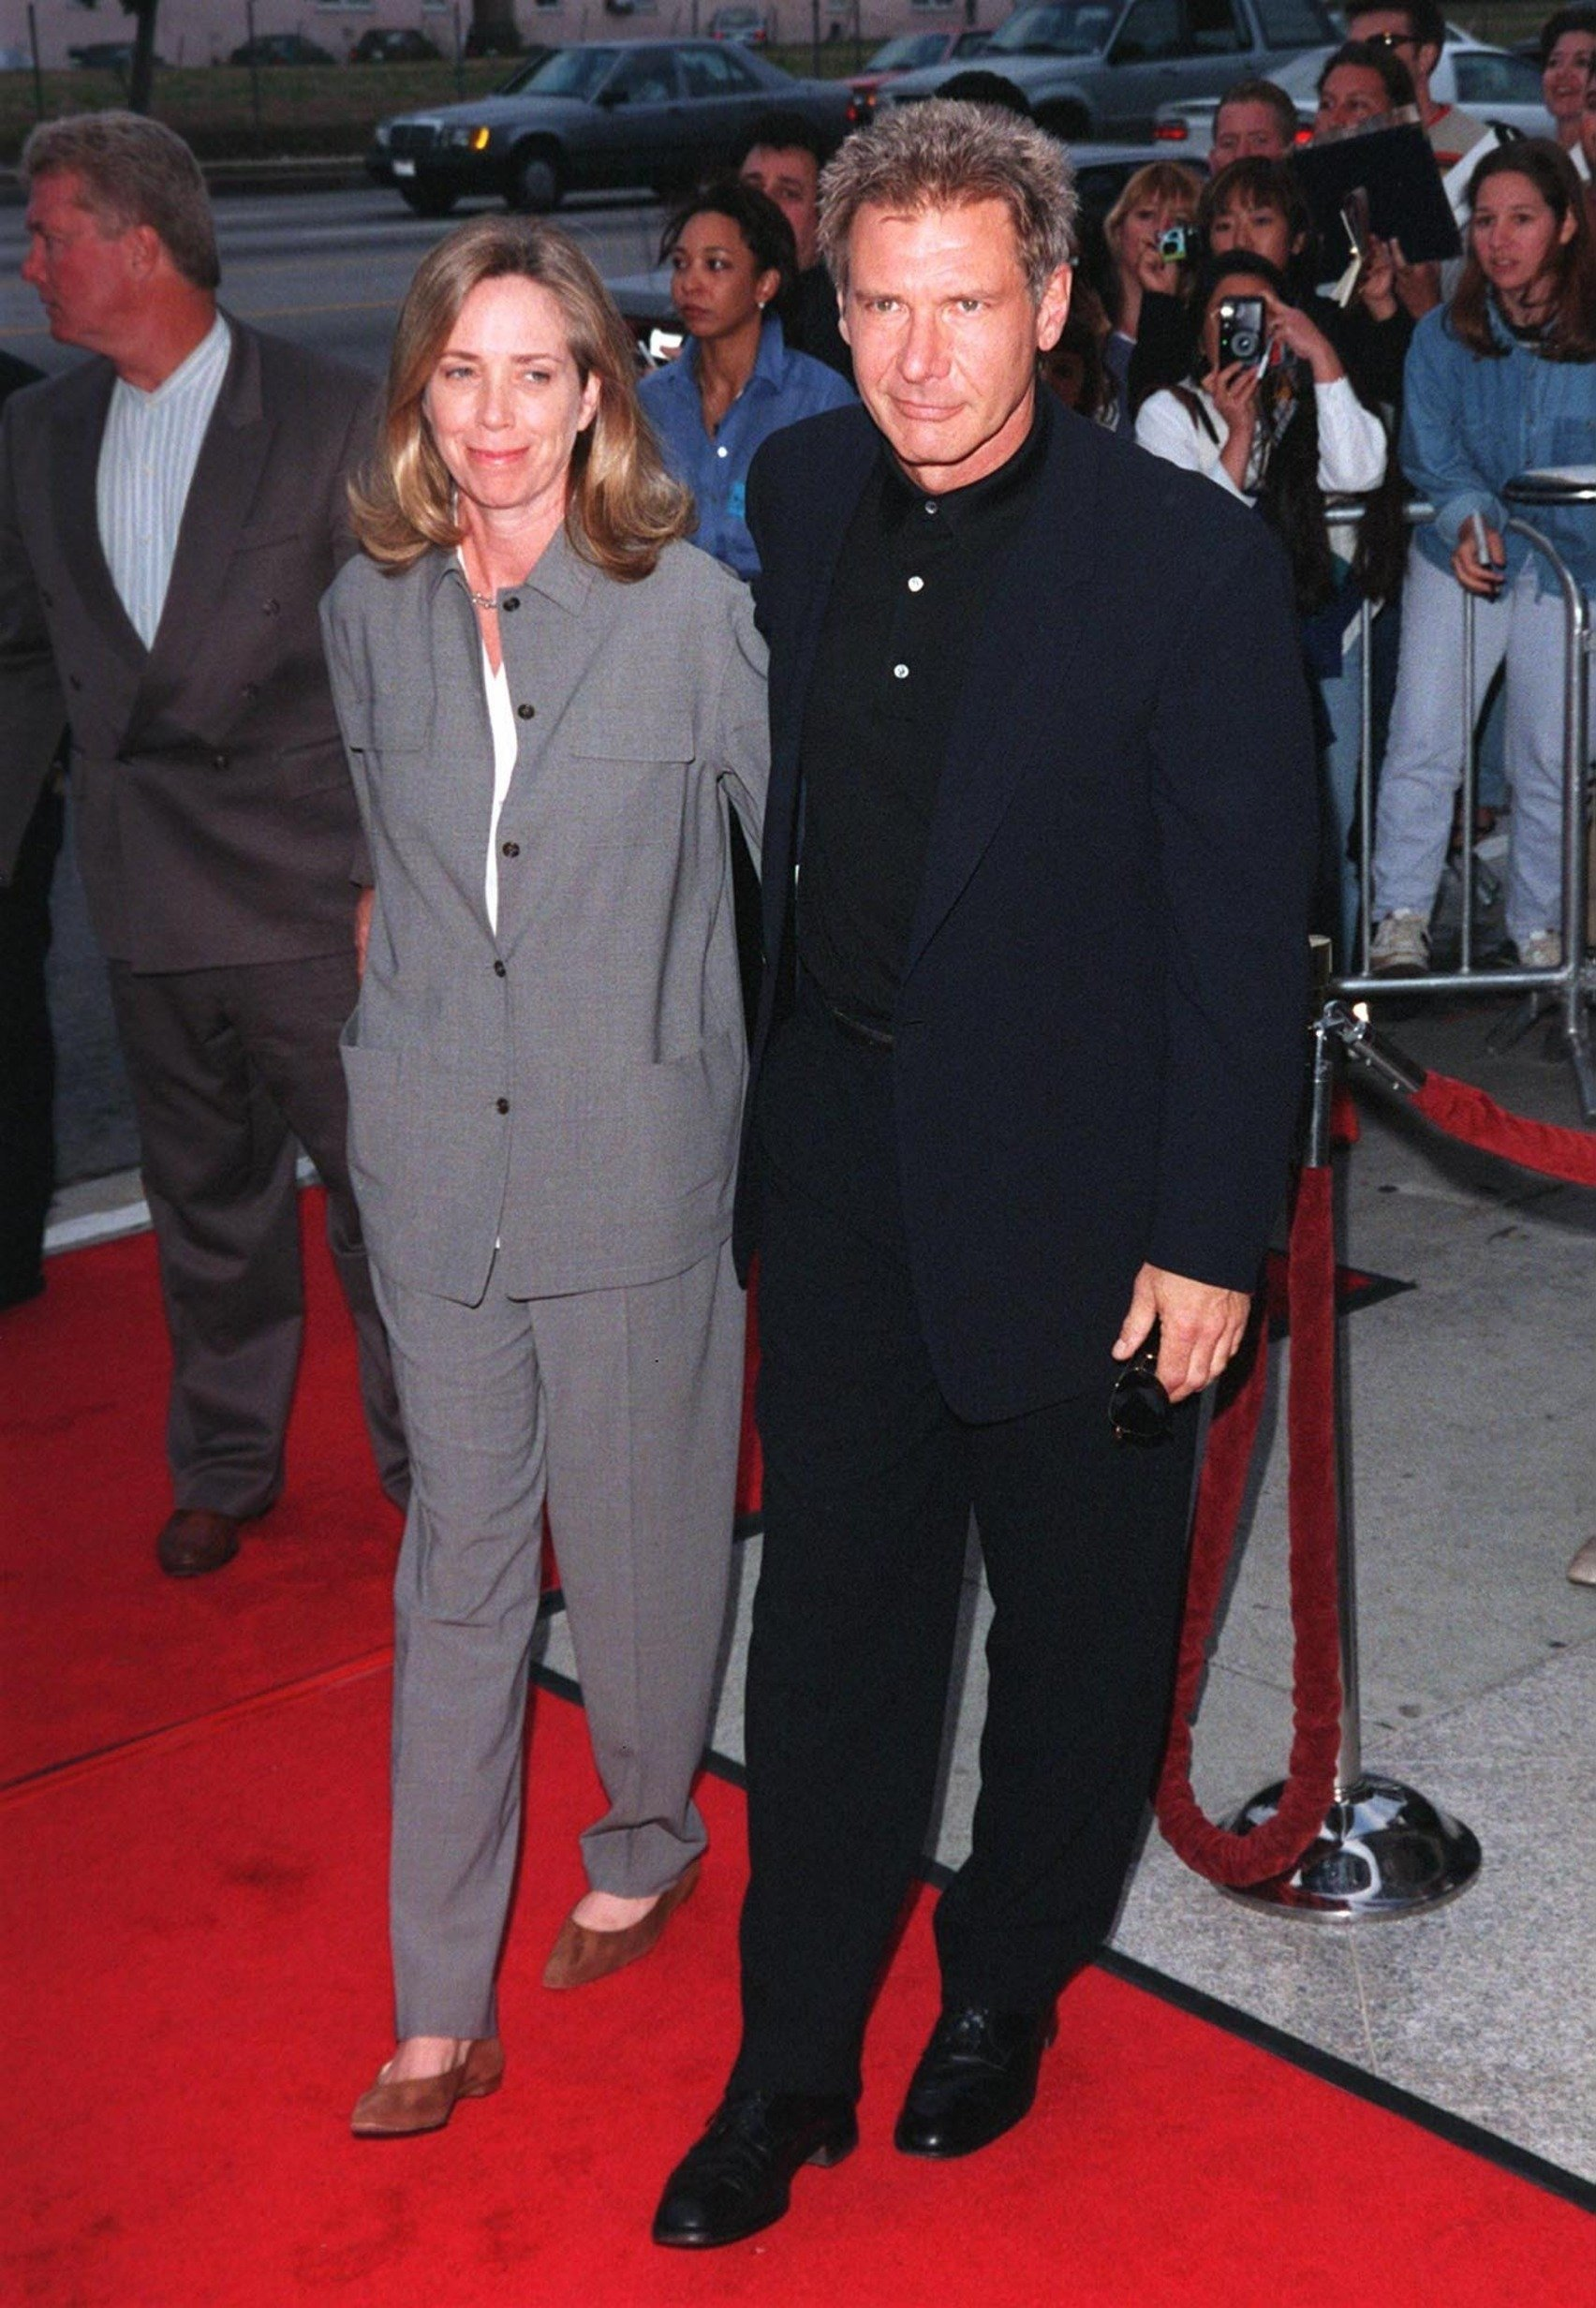 """Actors Harrison Ford with his wife Melissa Mathison at premiere of his movie, """"Six Days, Seven Nights"""" on June 8, 1998   Photo: Shutterstock"""